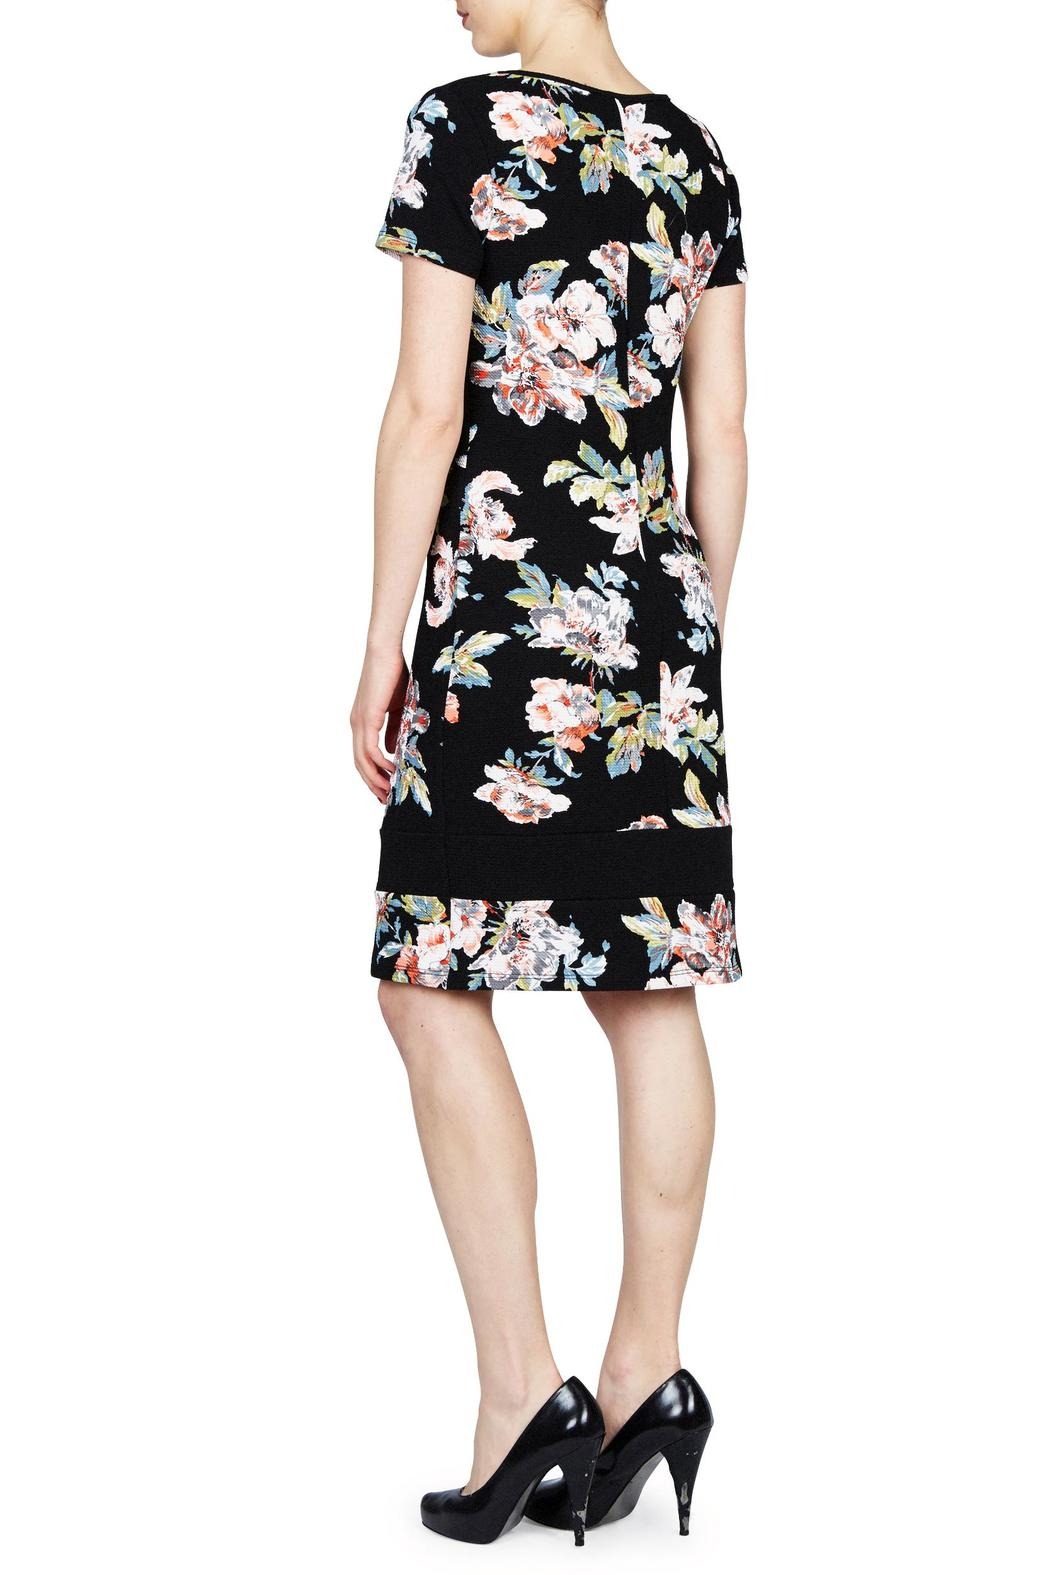 PAPILLON BLANC Floral Shift Dress - Front Full Image